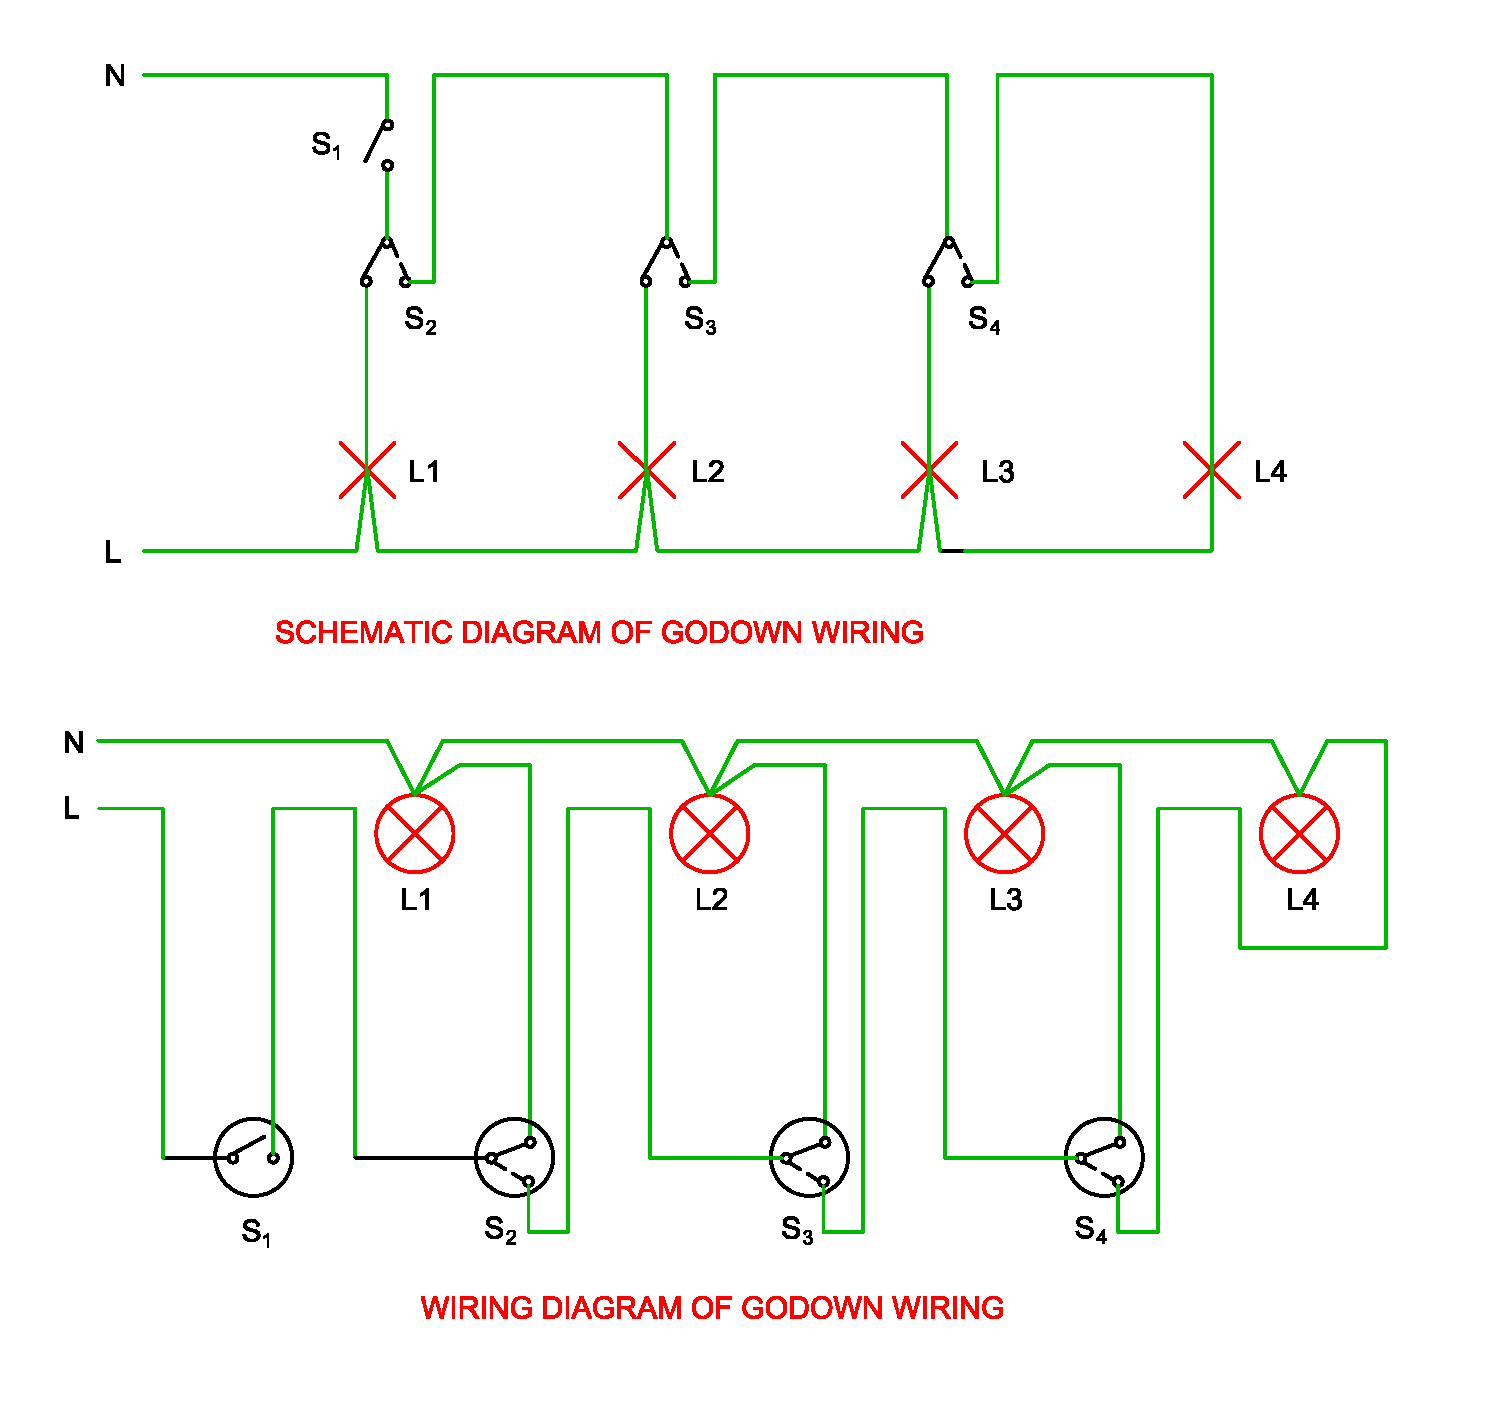 schematic and wiring diagram of go down wiring [ 1494 x 1418 Pixel ]